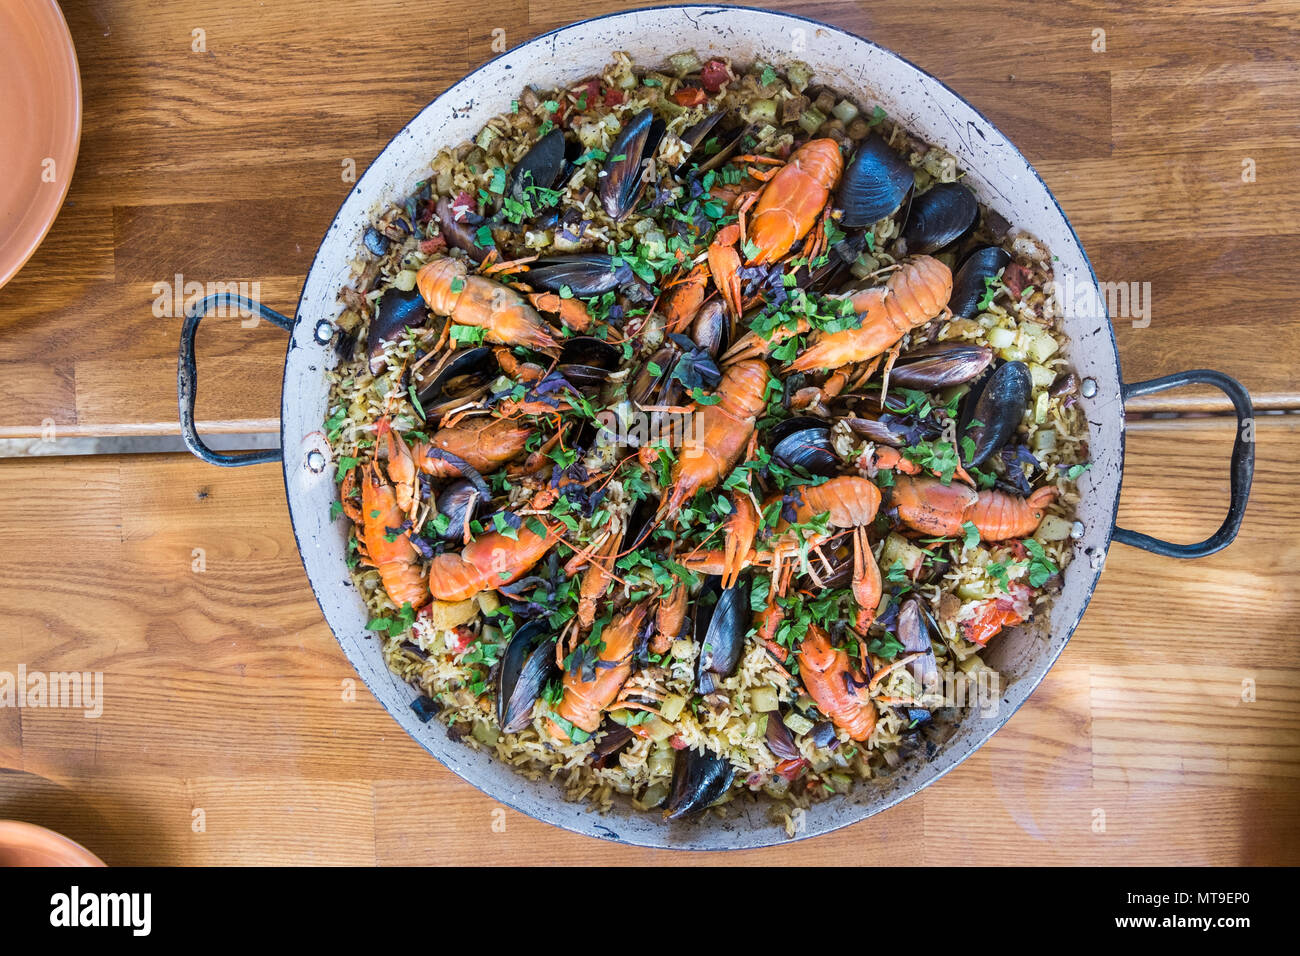 Spanish seafood Paella with Prawns Mussels and ?rayfish on wood table - Stock Image